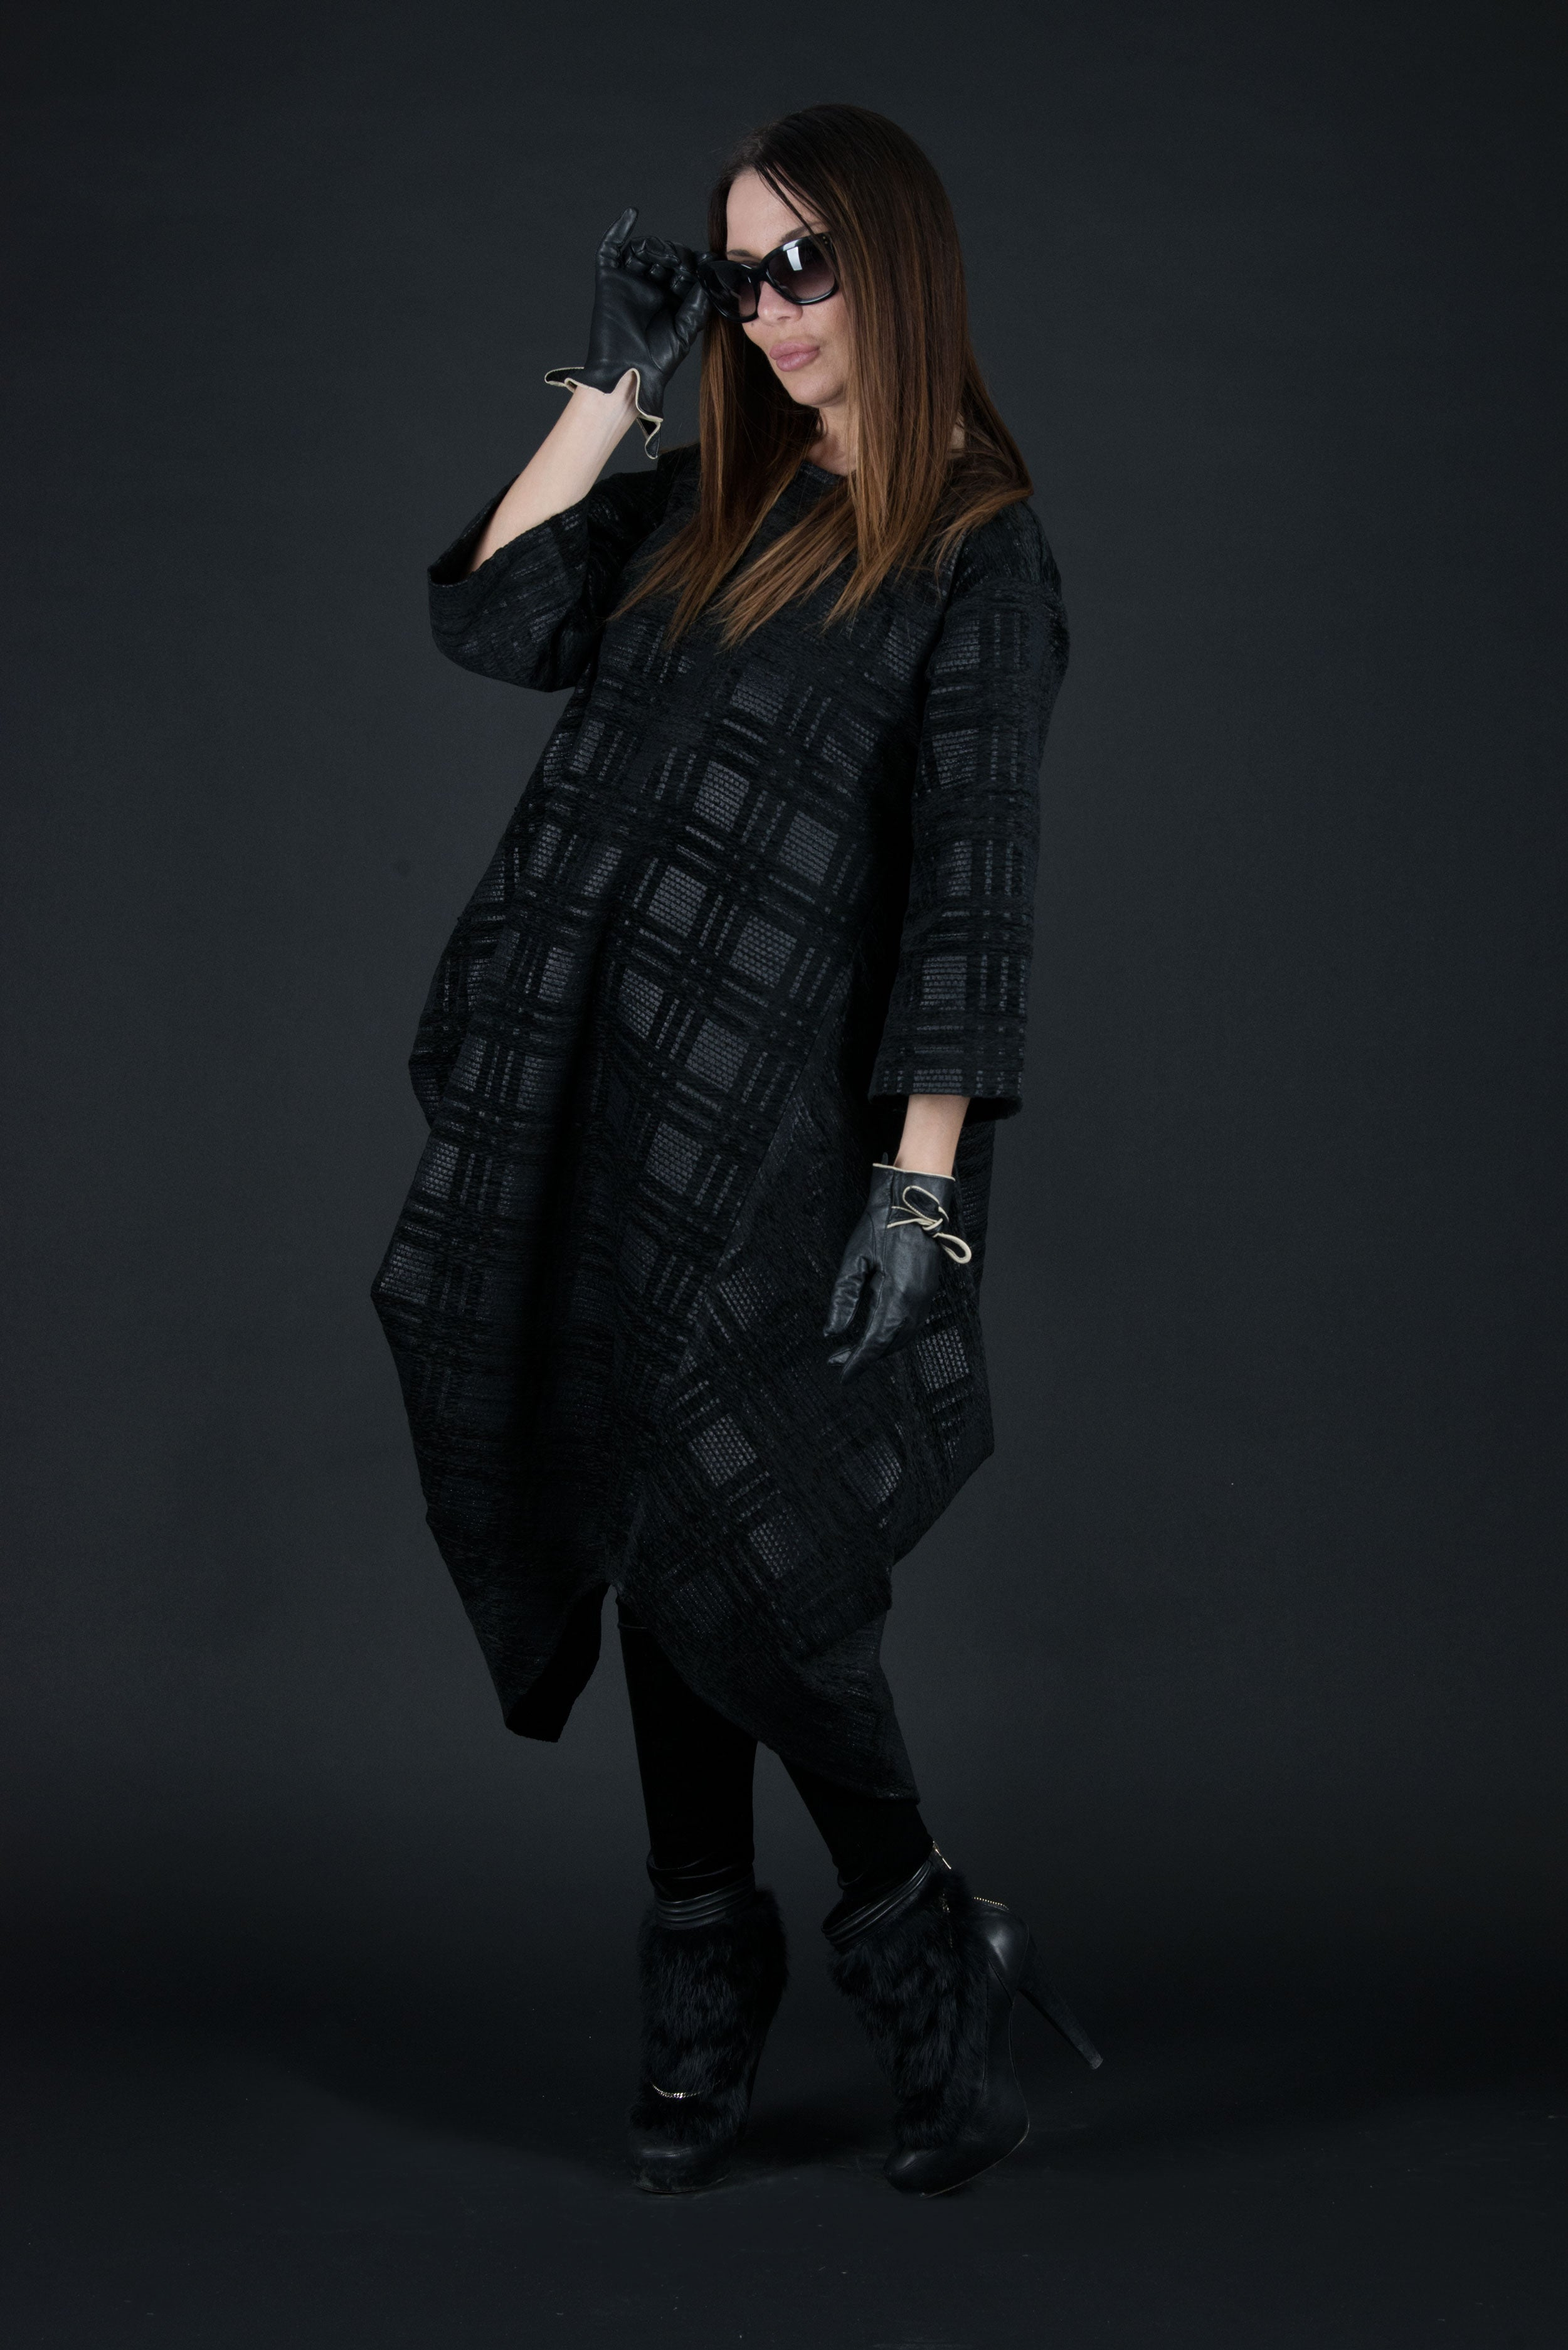 Black Autumn Winter Maxi Dress, Wool Dress